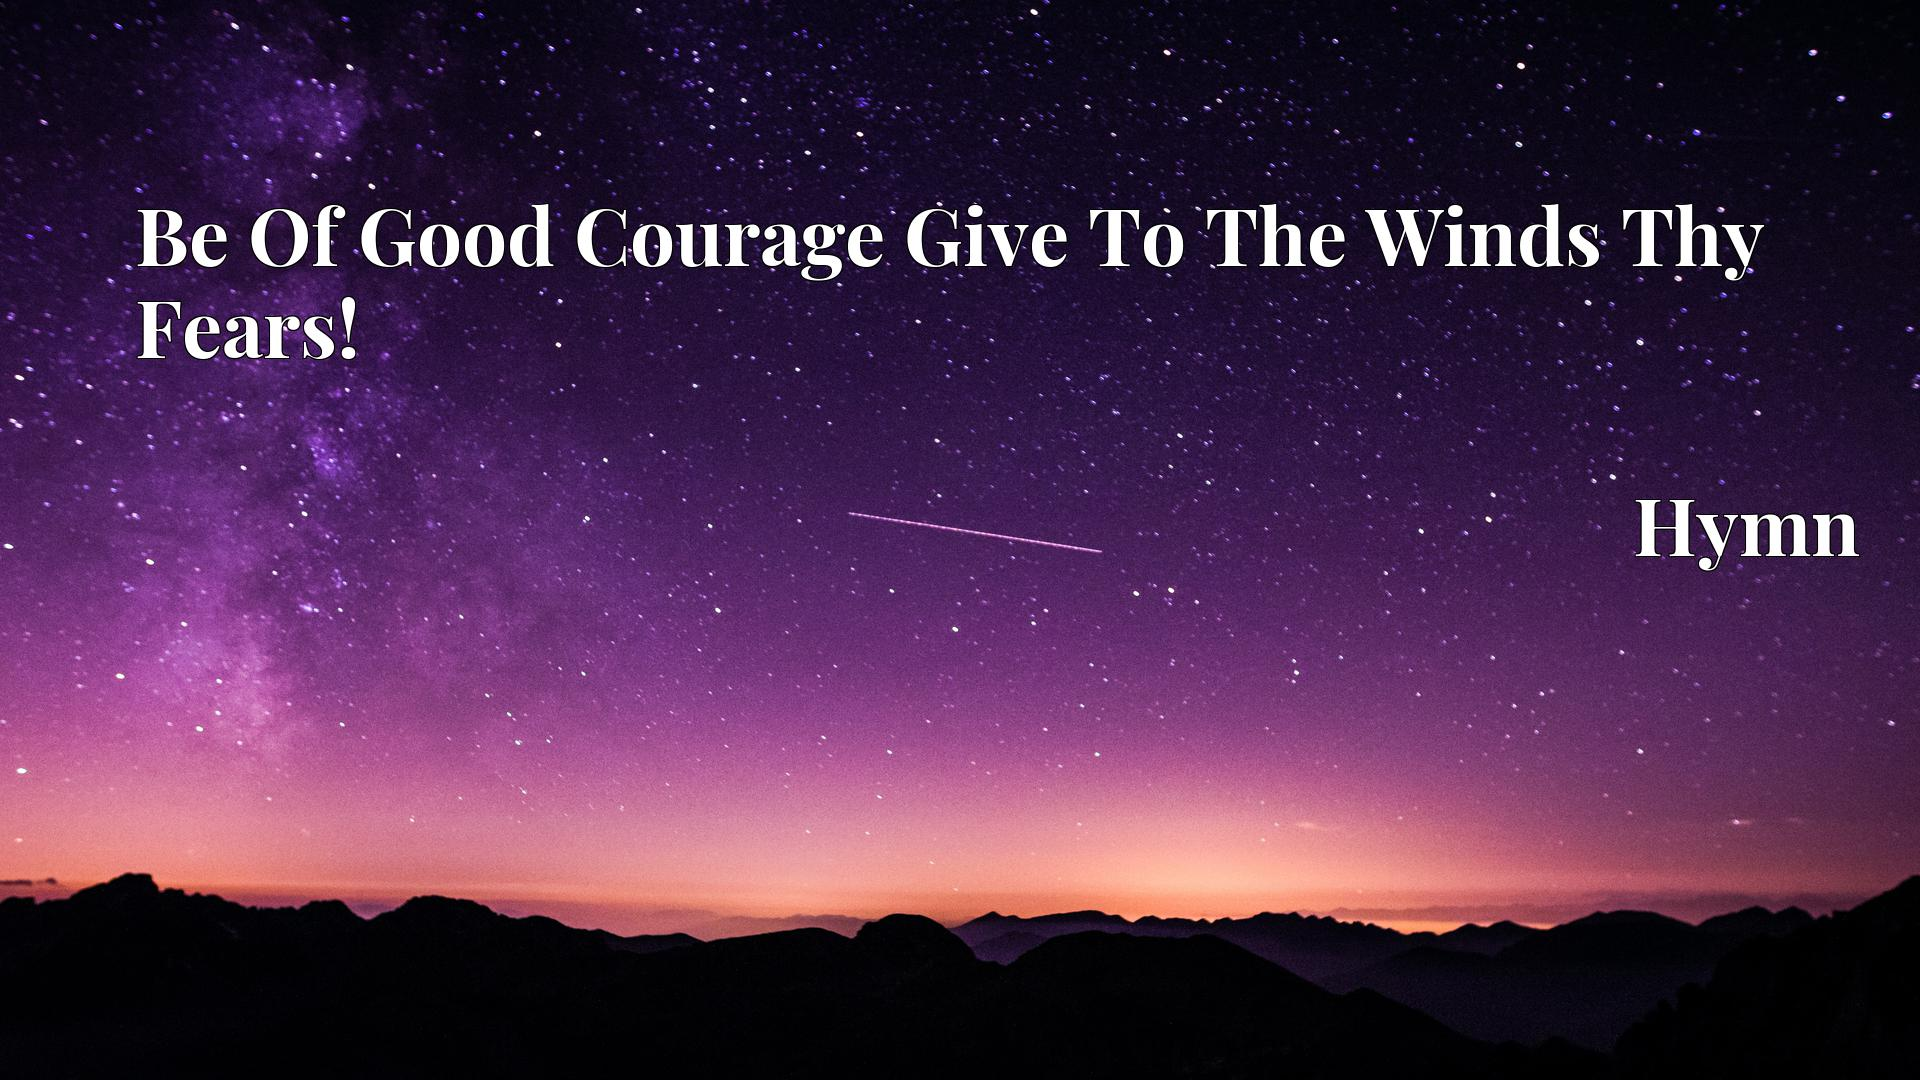 Be Of Good Courage Give To The Winds Thy Fears! - Hymn